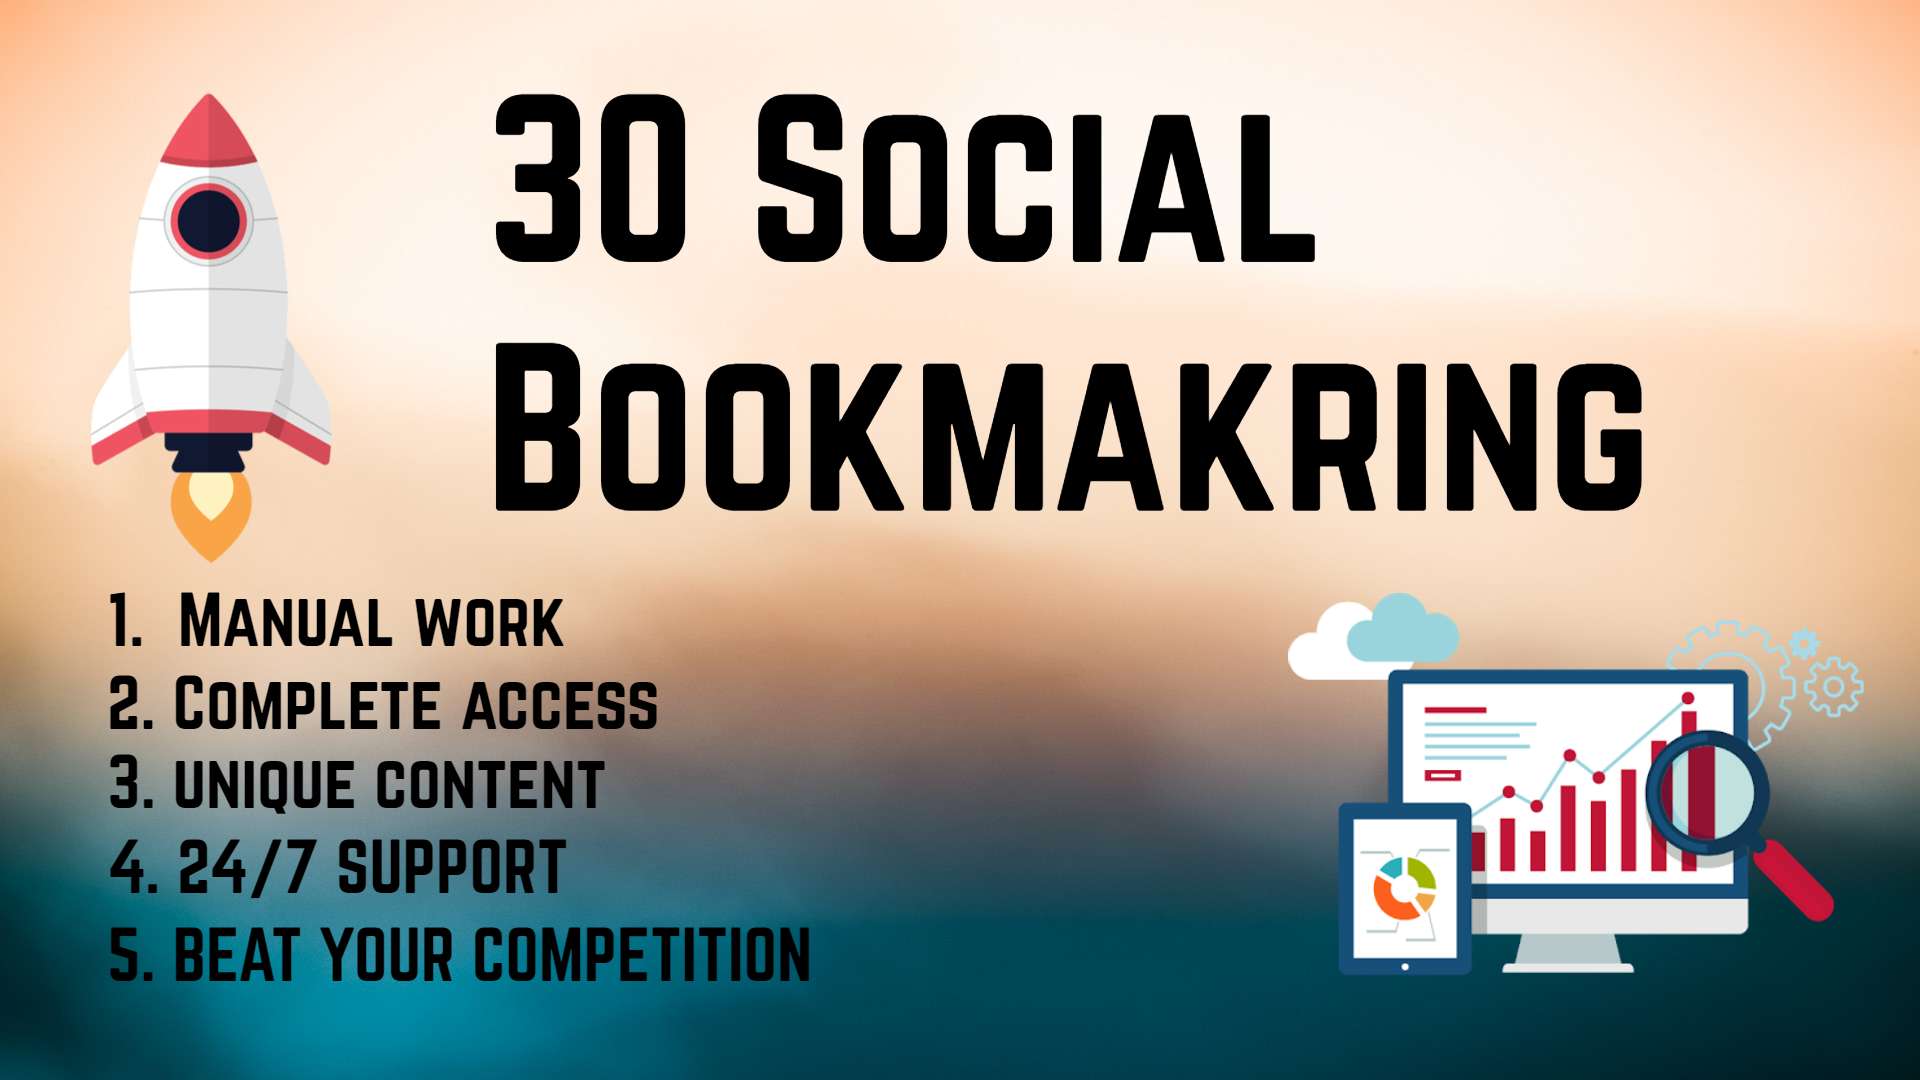 I Will Sumbit High PR 30 Social Bookmarking Backlinks With DOFOLLOW To Improve Rankings